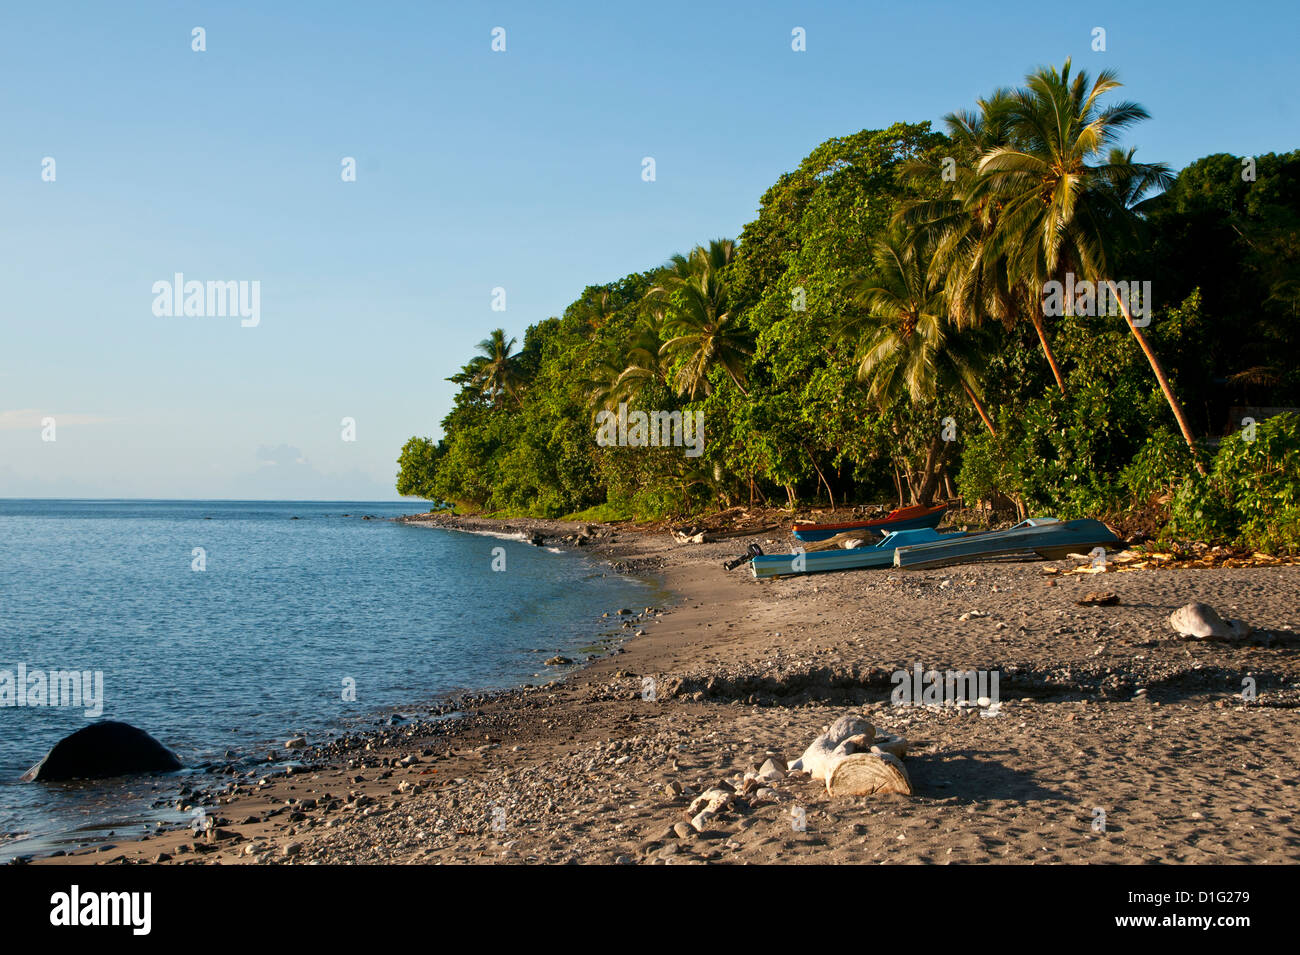 Beach on Savo Island, Solomon Islands, Pacific - Stock Image